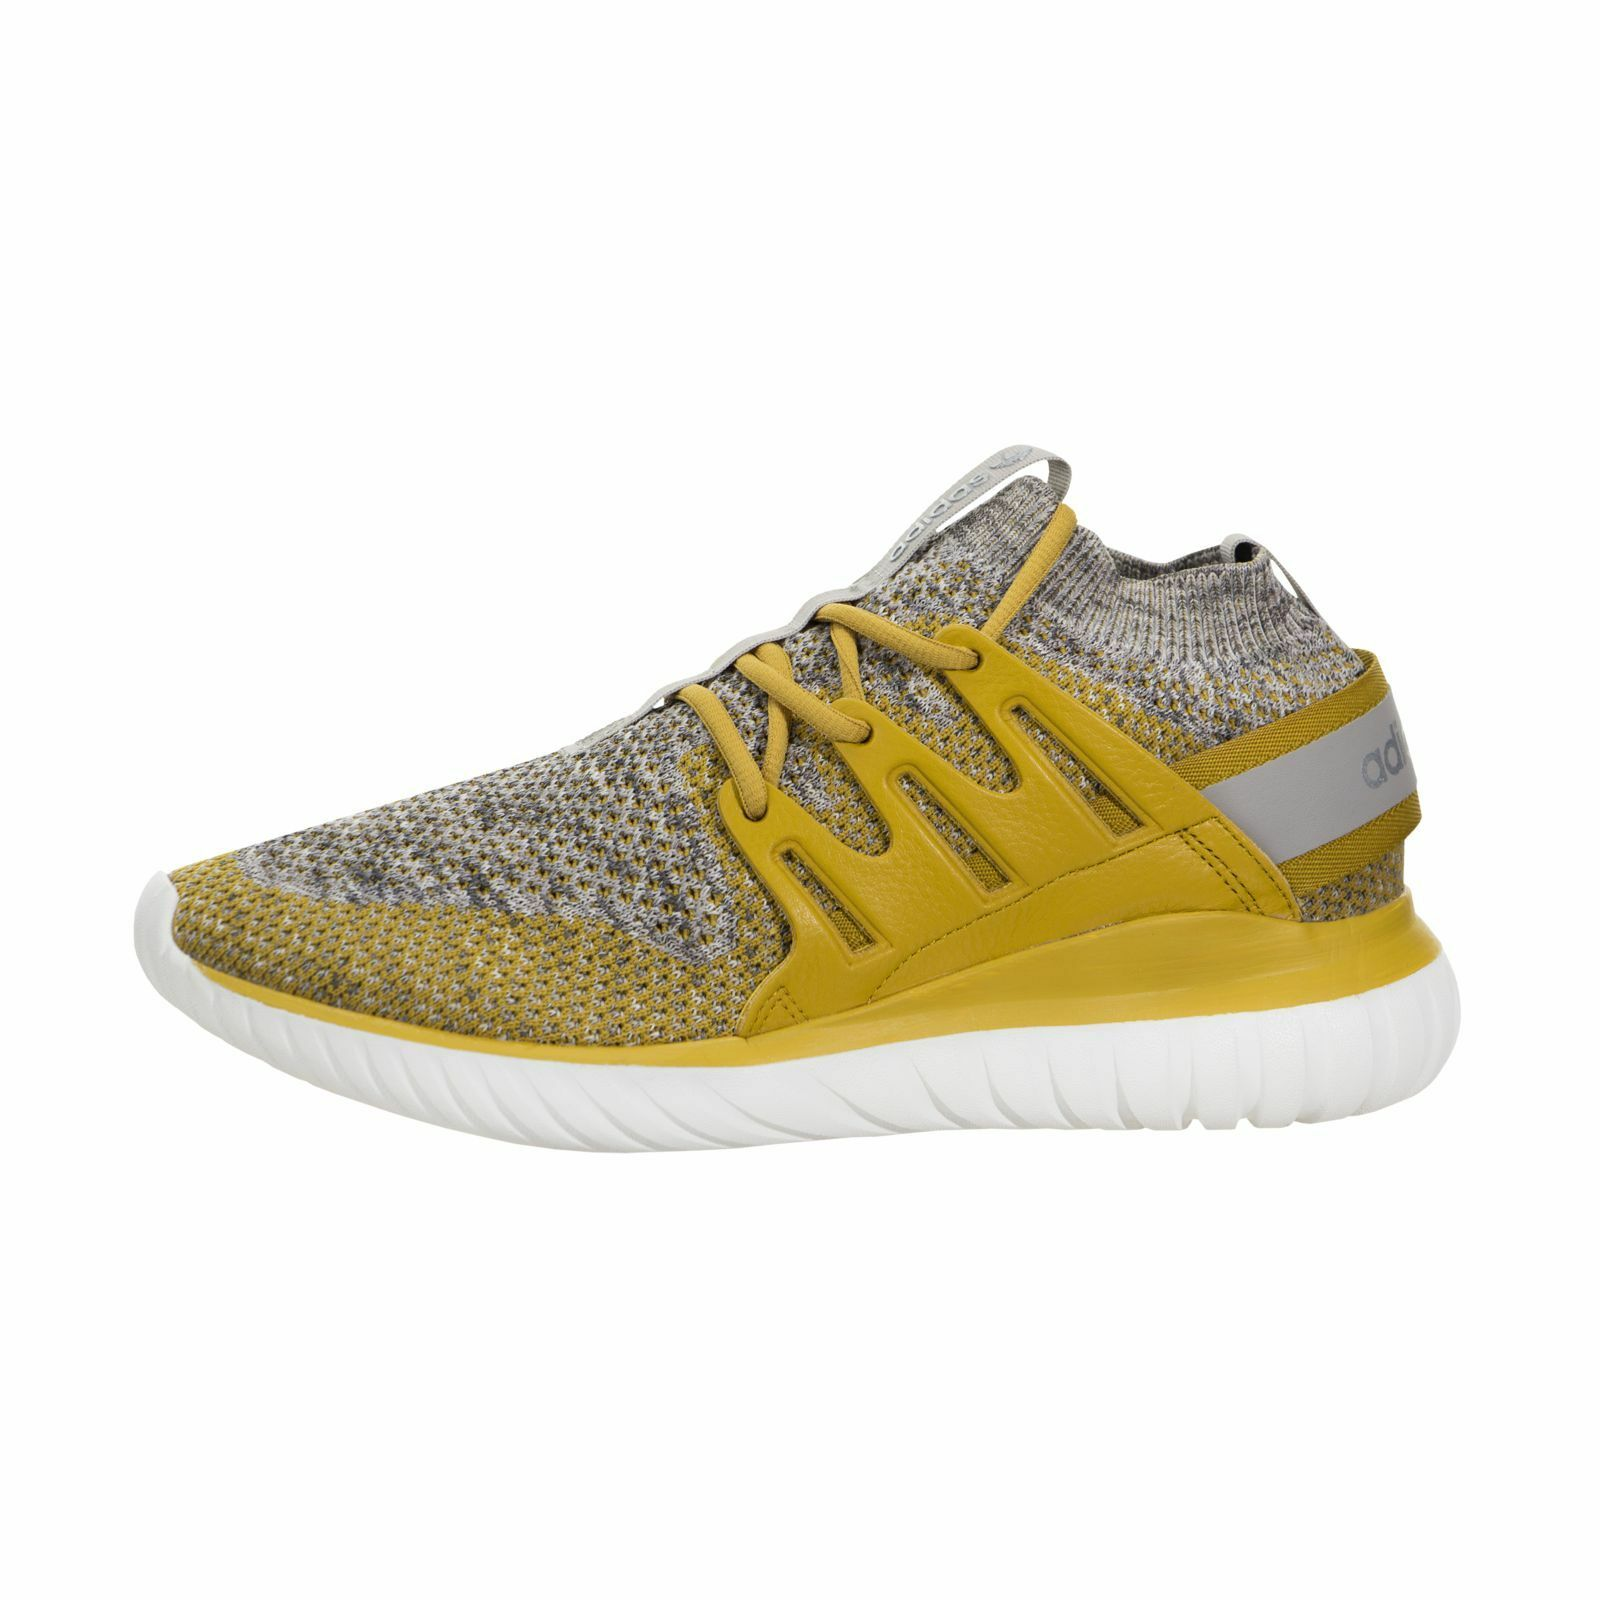 Cheap Nice Adidas Tubular Nova Primeknit on the sale